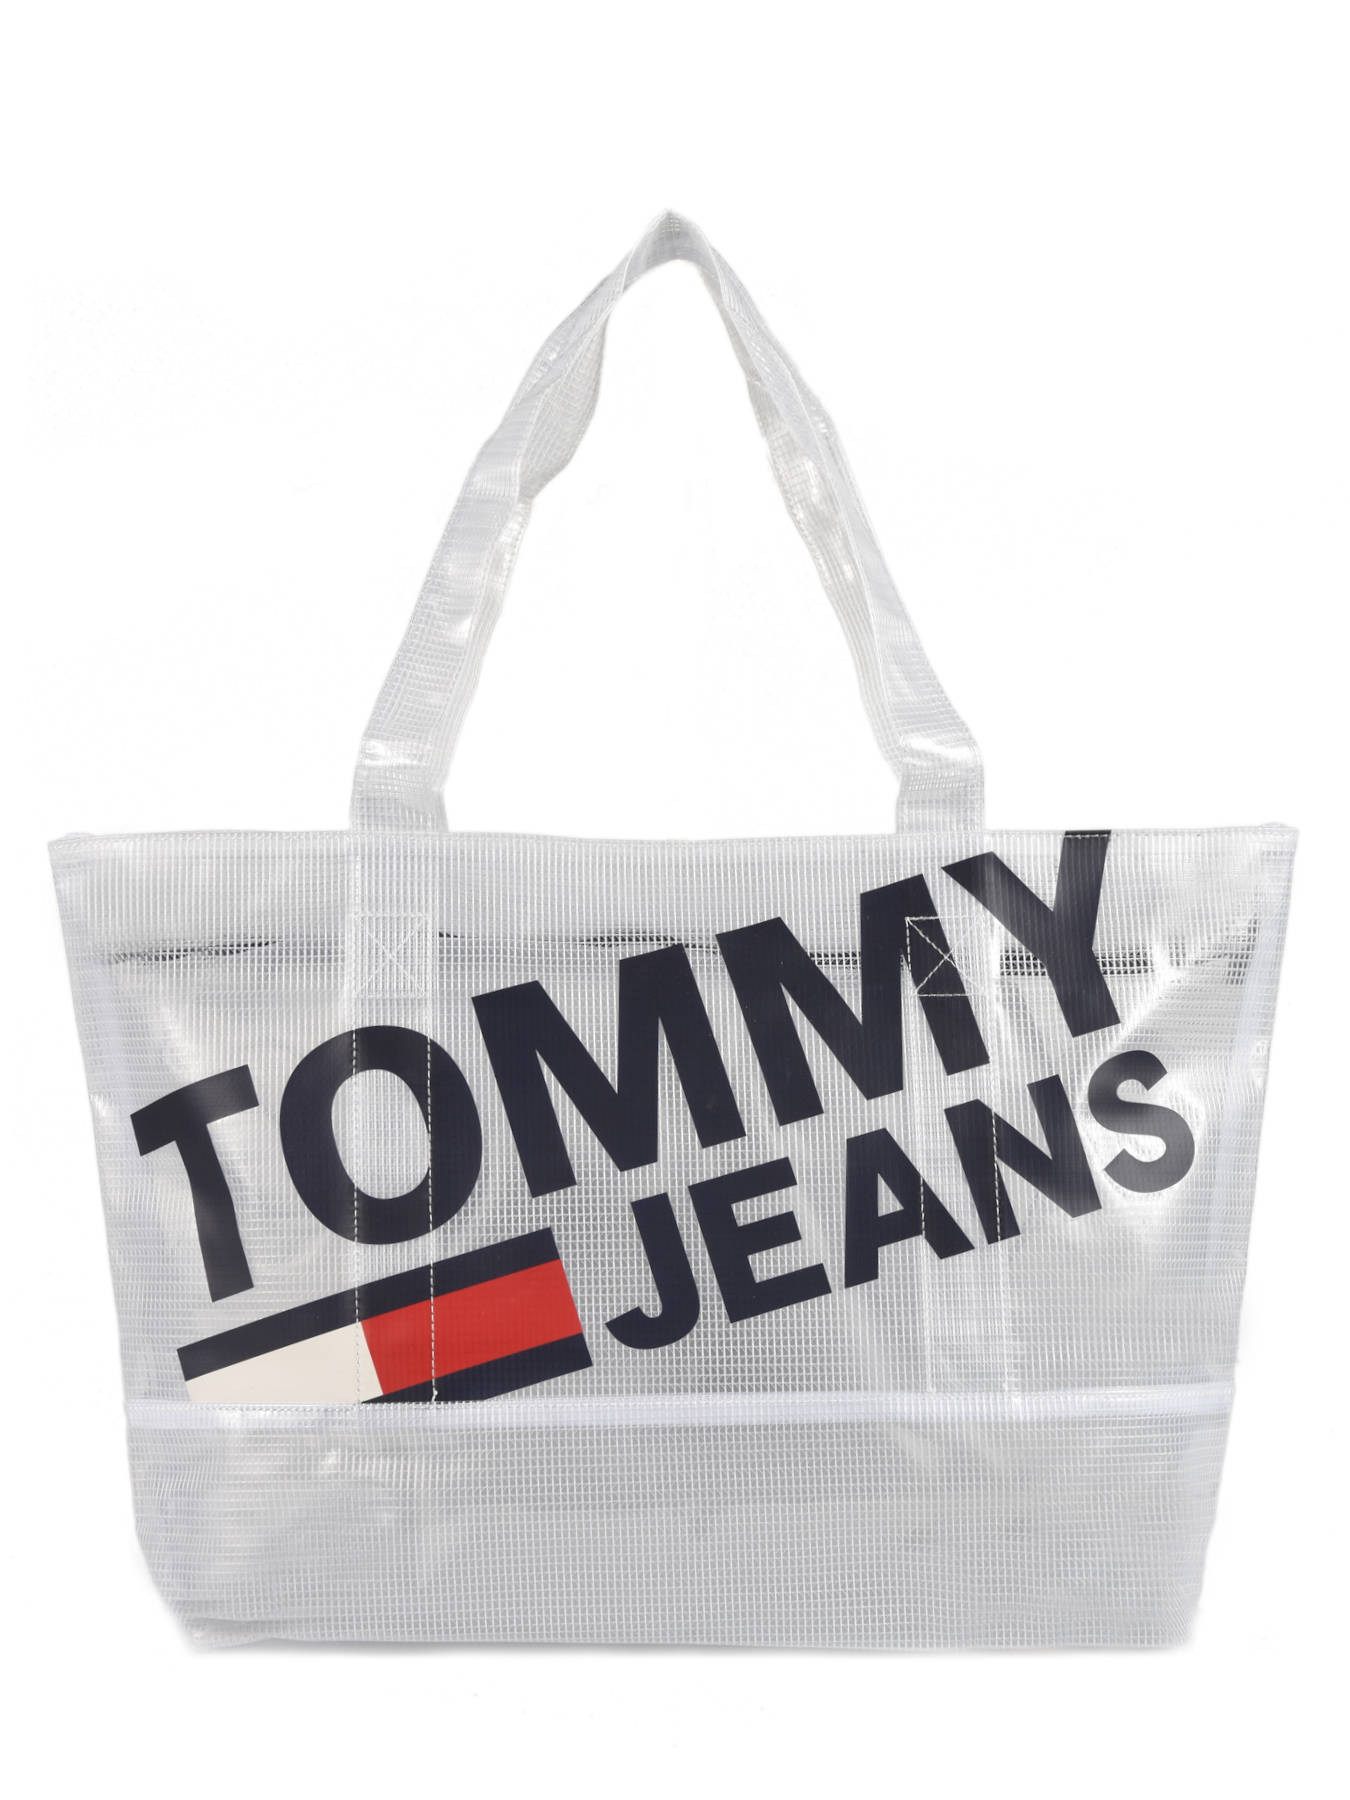 76cce35b39 ... Semi-transparant Shoulder Bag A4 Tommy Jeans Tommy hilfiger White tju  AU00590 ...